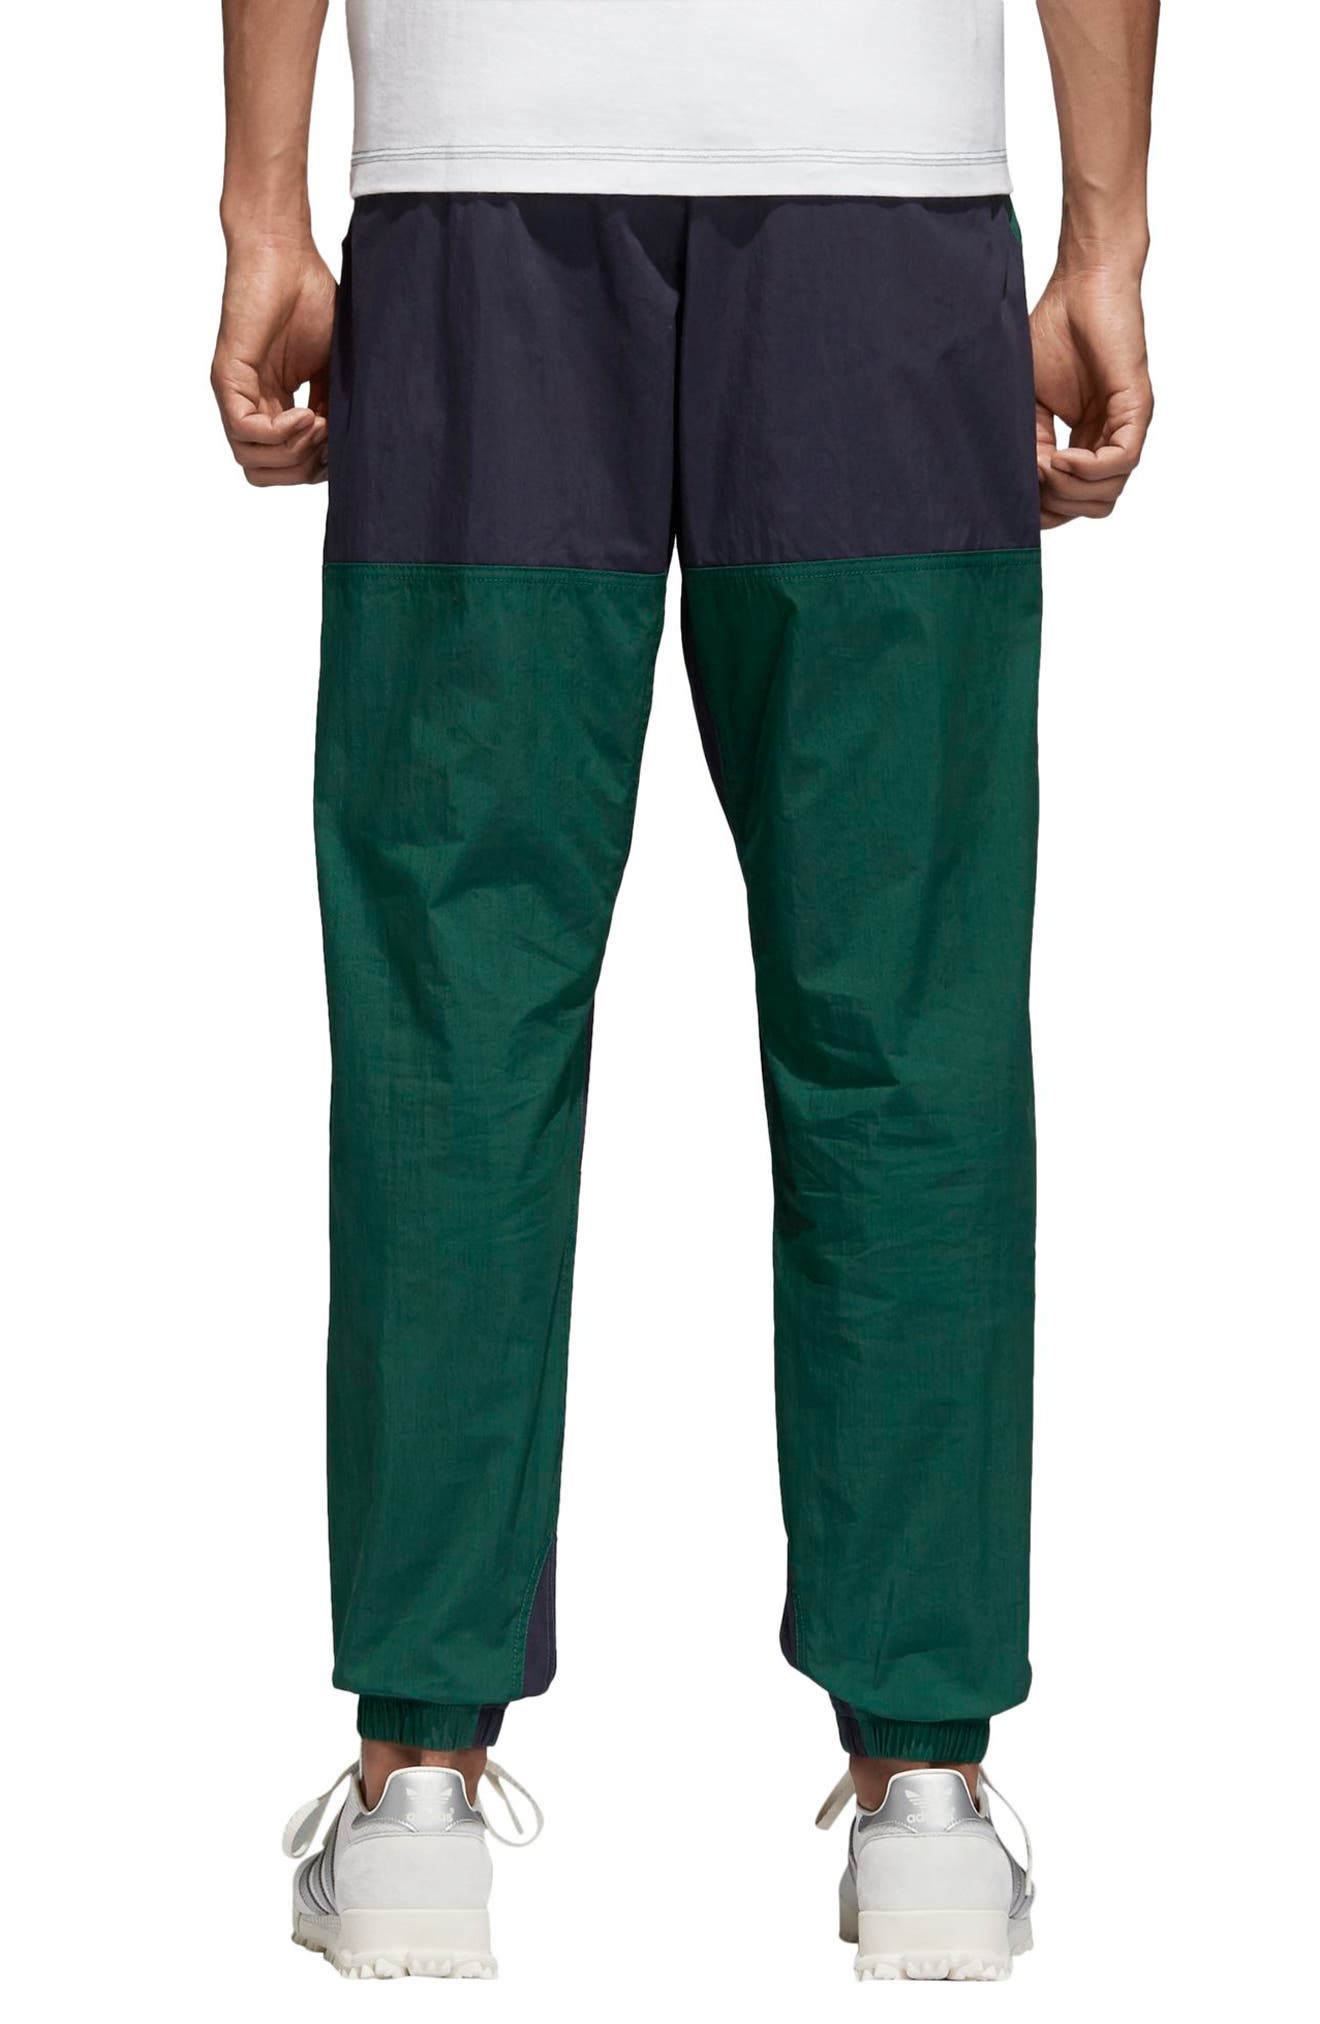 Atric Slim Fit Pants,                             Alternate thumbnail 2, color,                             COLLEGIATE GREEN